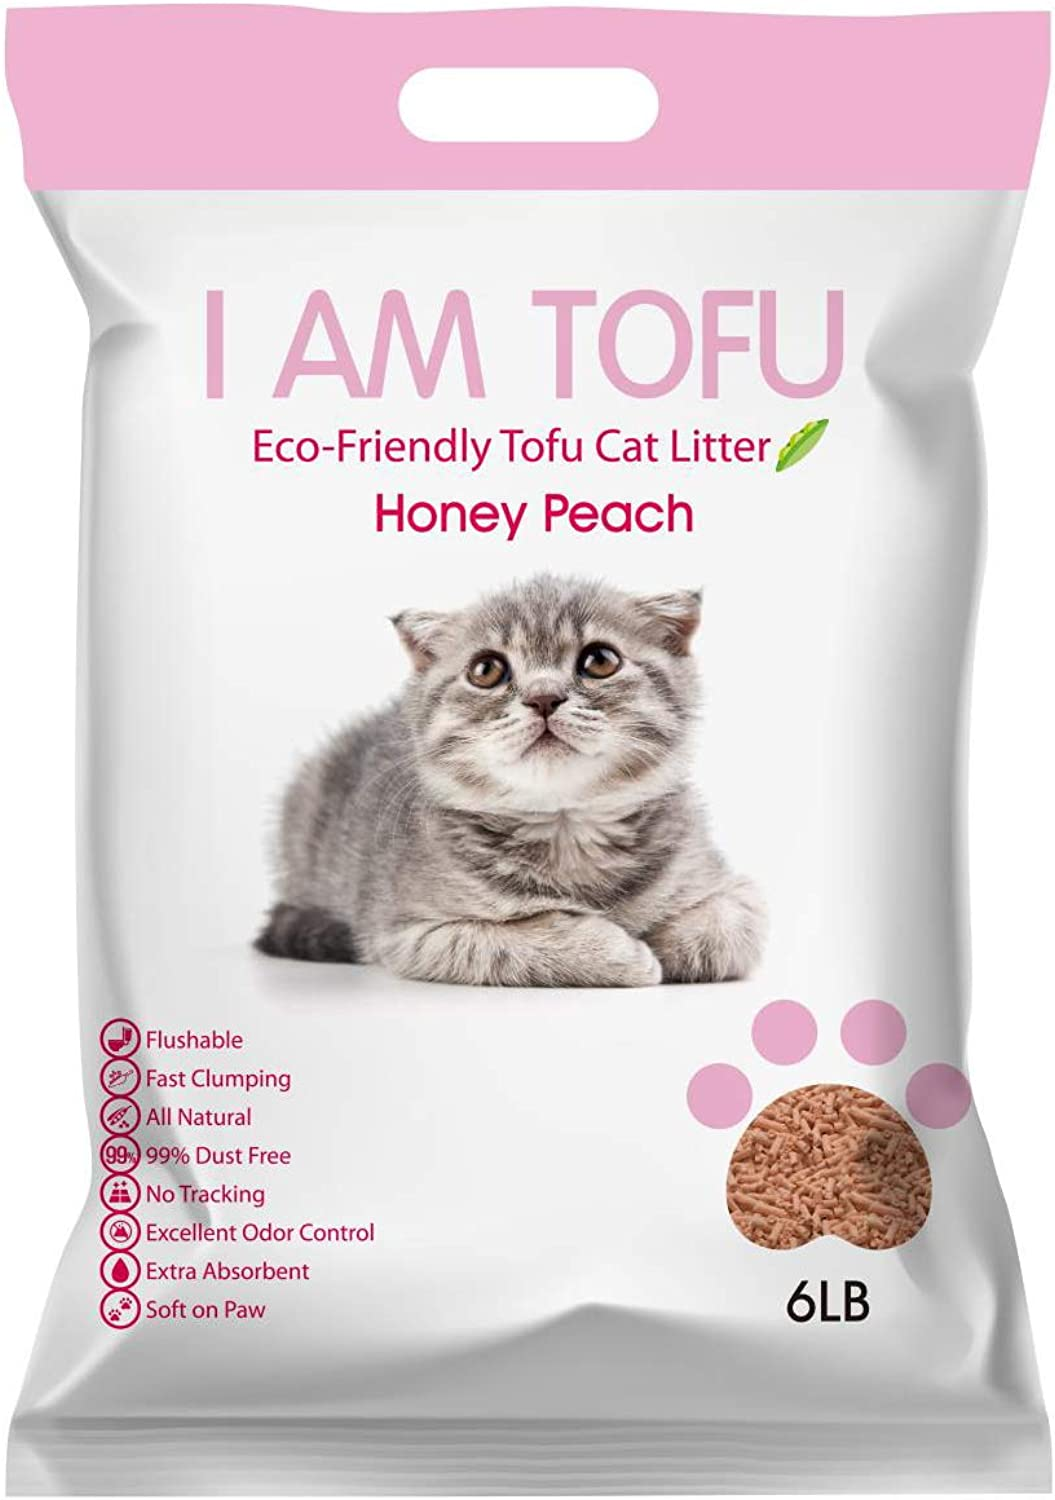 I AM TOFU  Tofu Cat Litter, EcoFriendly Flushable Pellet Litter, Made by SOYA Bean, 6lb, Honey Peach